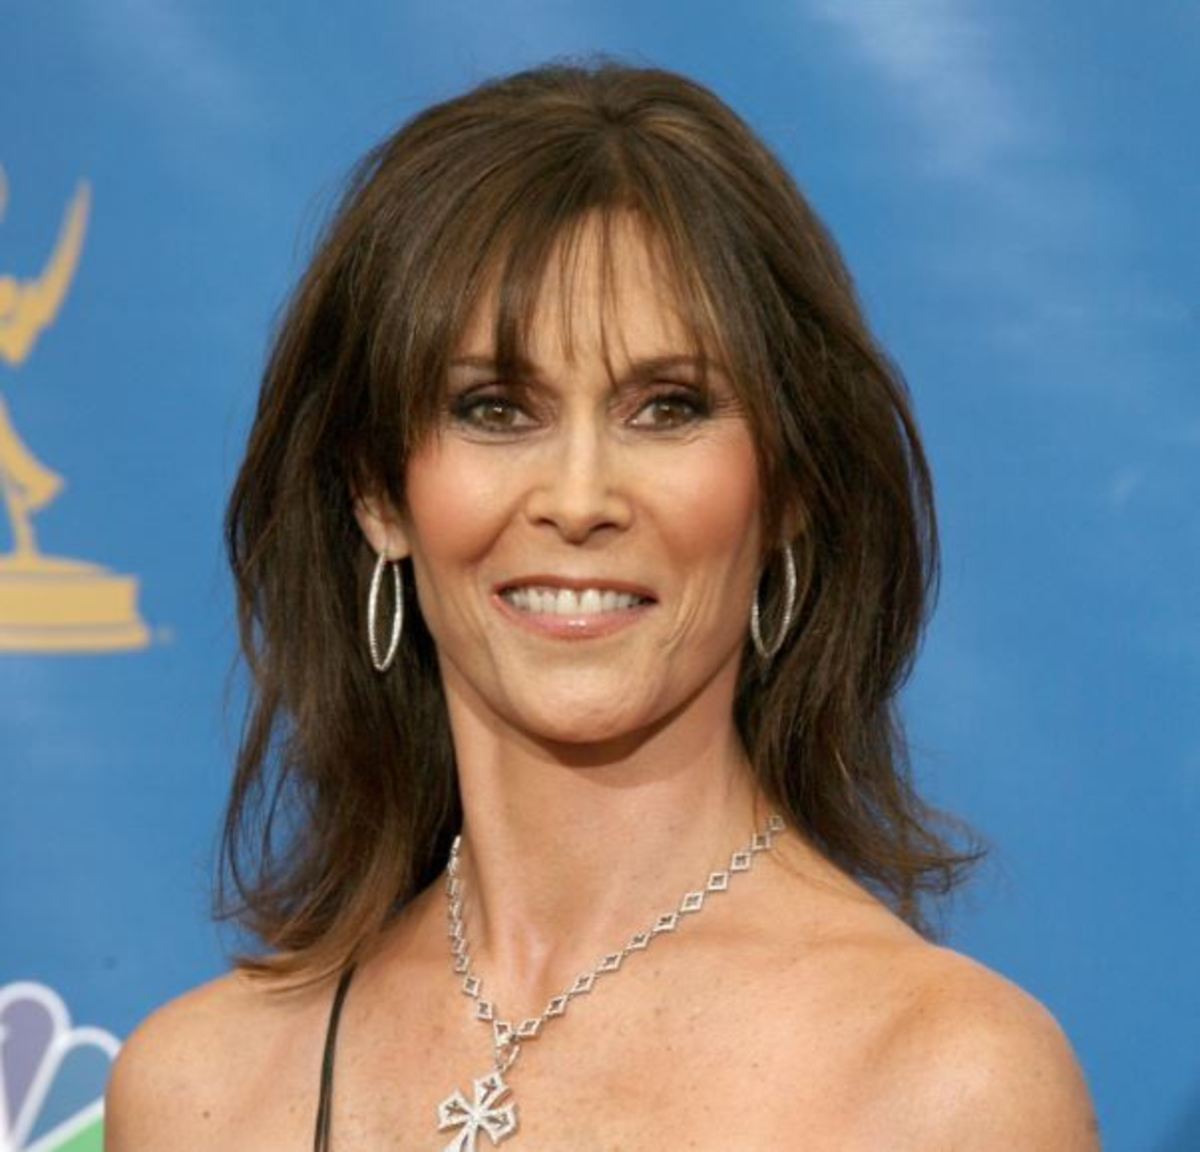 Kate Jackson in 58th Primetime Emmy Awards. Kate Jackson played the role of Sabrina Duncan in Charlie's Angels. She was diagnosed with breast cancer in 1987 and was later announced cancer free.